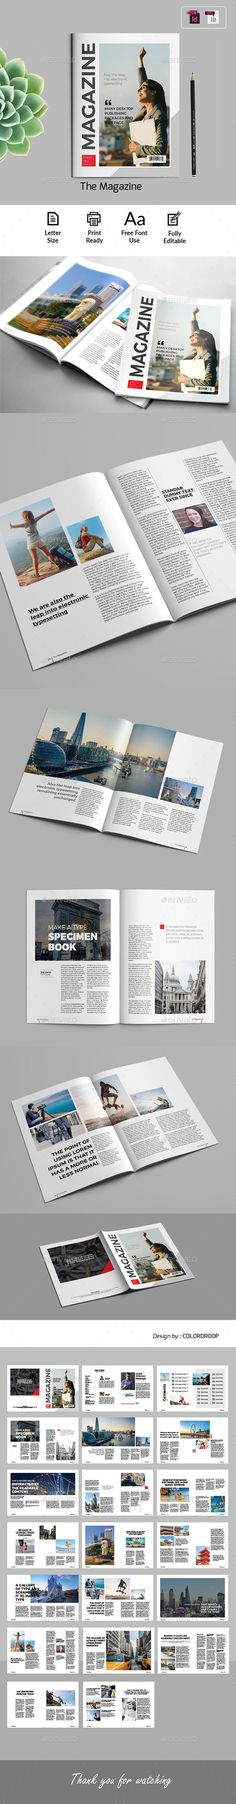 The Magazine Template — InDesign INDD #modern publications #adventure • Download ➝ https://graphicriver.net/item/the-magazine-template/21382731?ref=pxcr